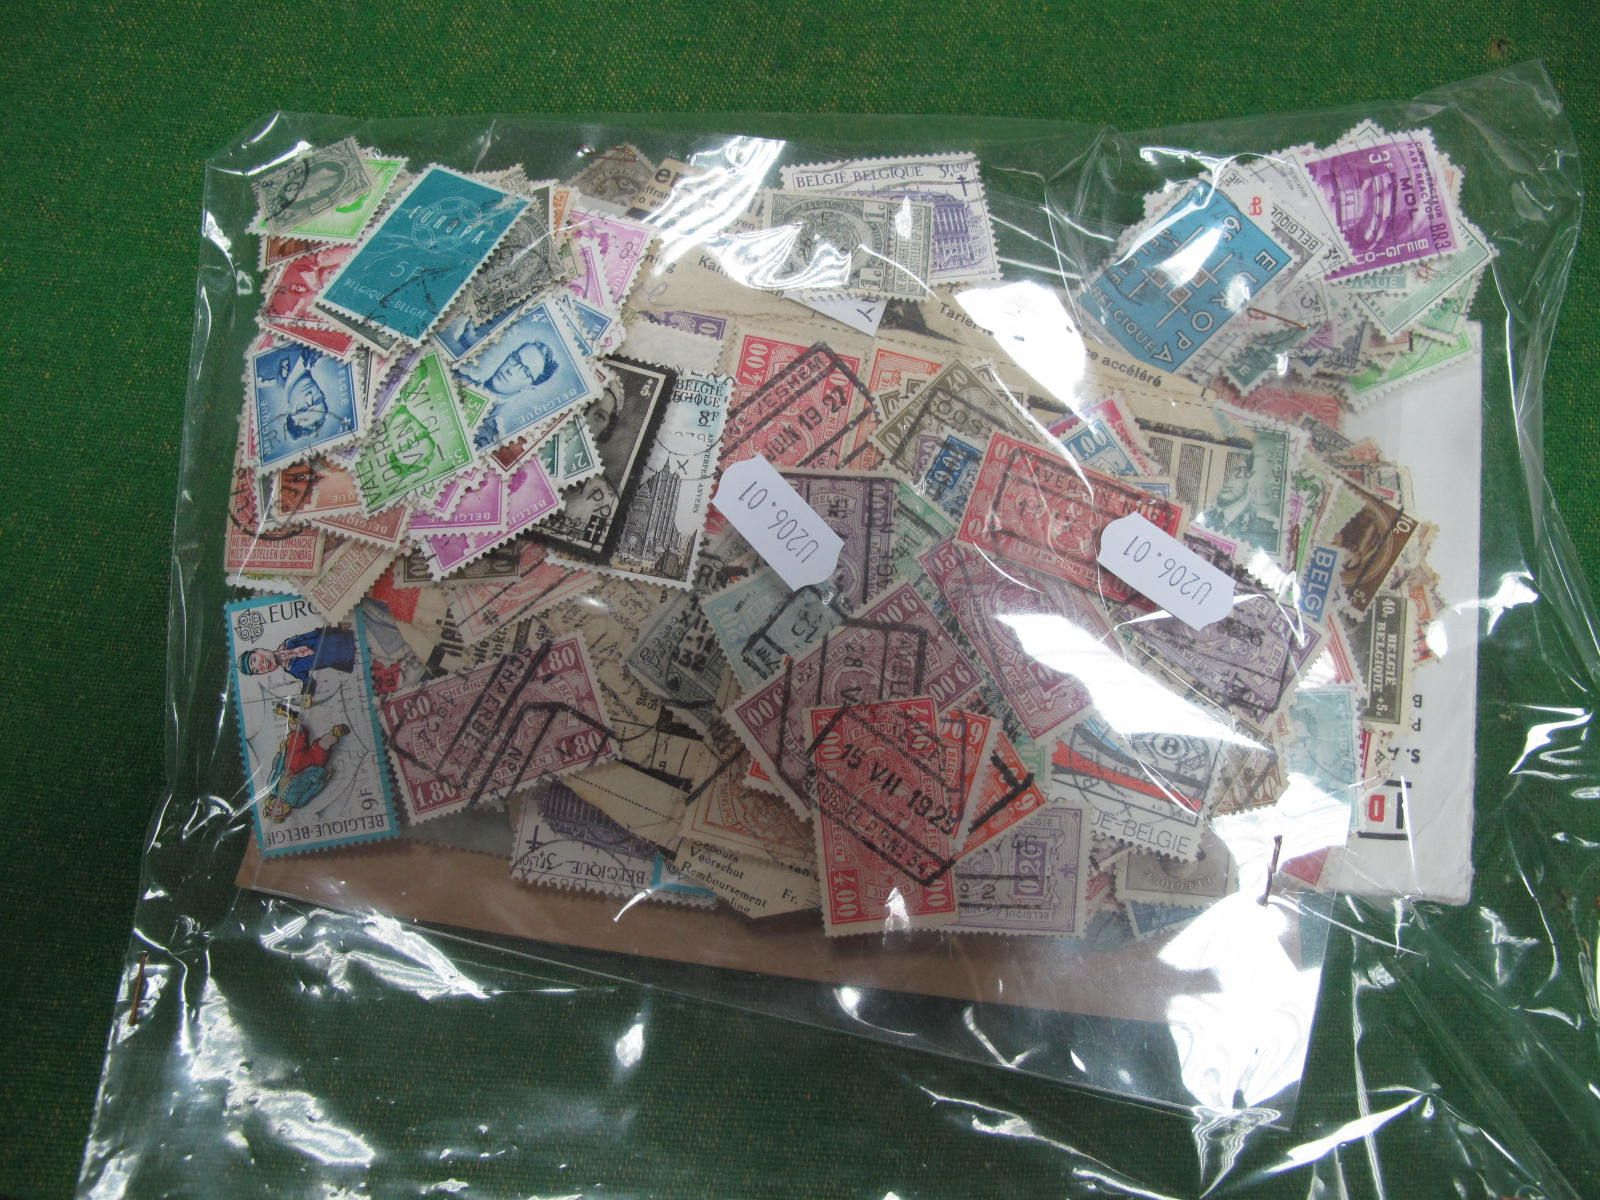 A Collection of Belgium Stamps, mainly used in a plastic bag, many hundreds including Railway